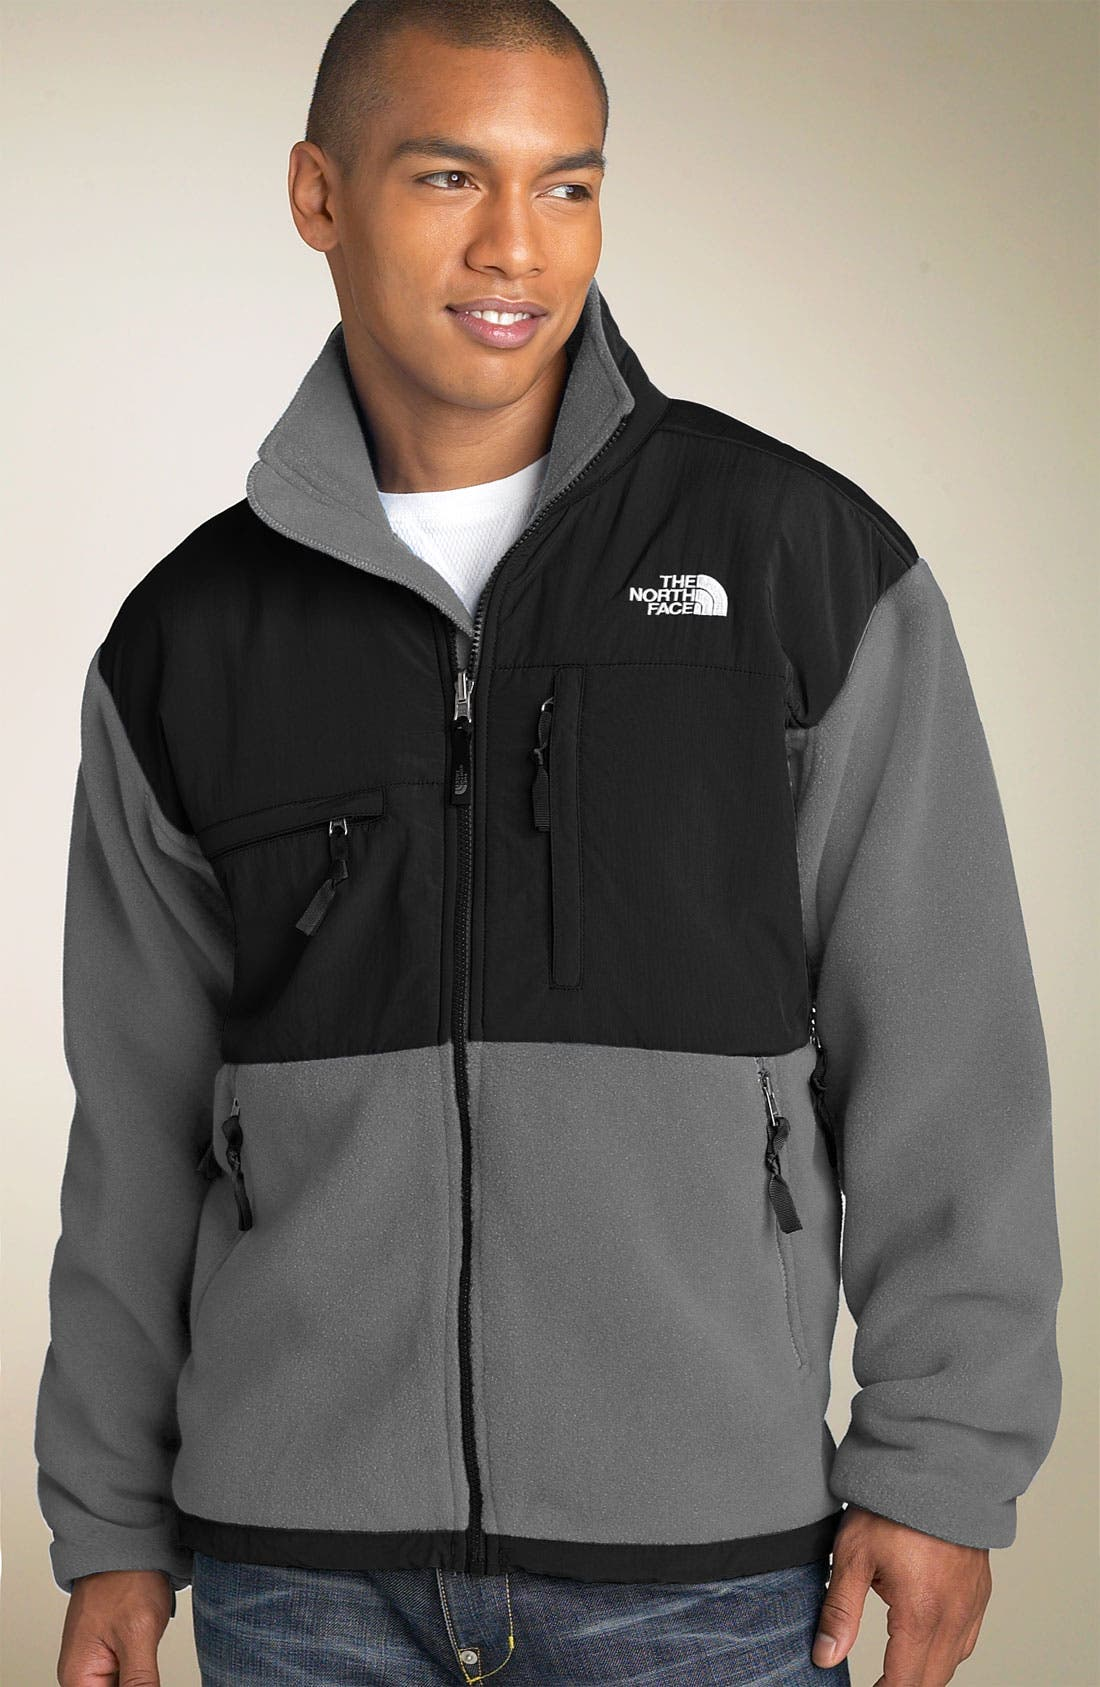 Alternate Image 1 Selected - The North Face 'Denali' Recycled Fleece Jacket